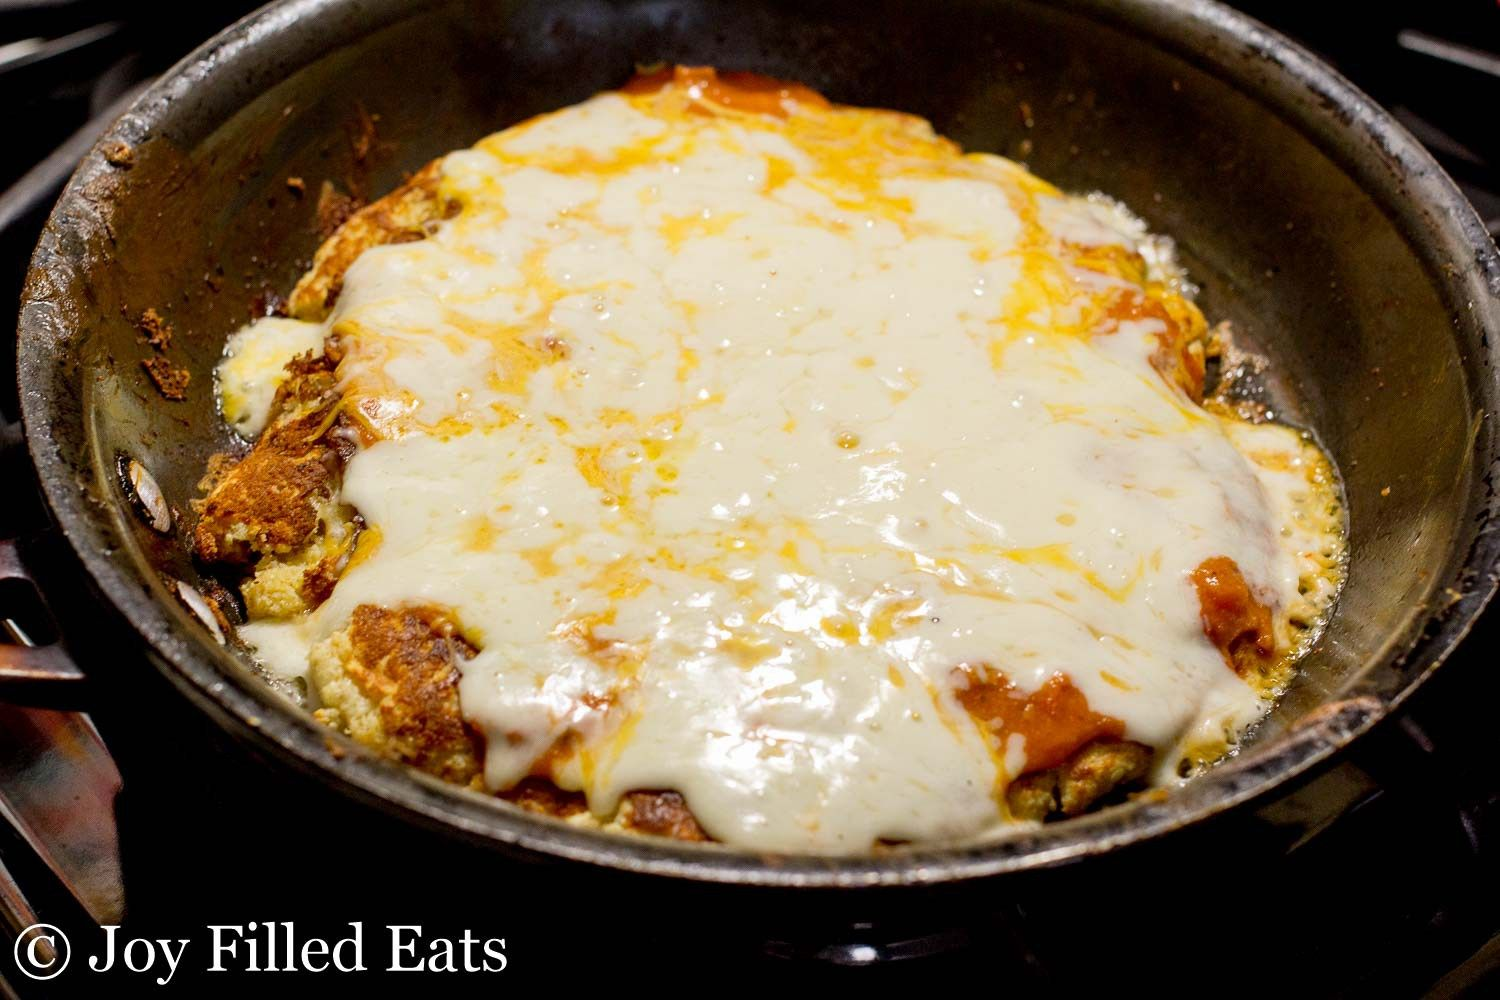 Low Carb Skillet Pizza Grain Free Thm S What Do You Do When It